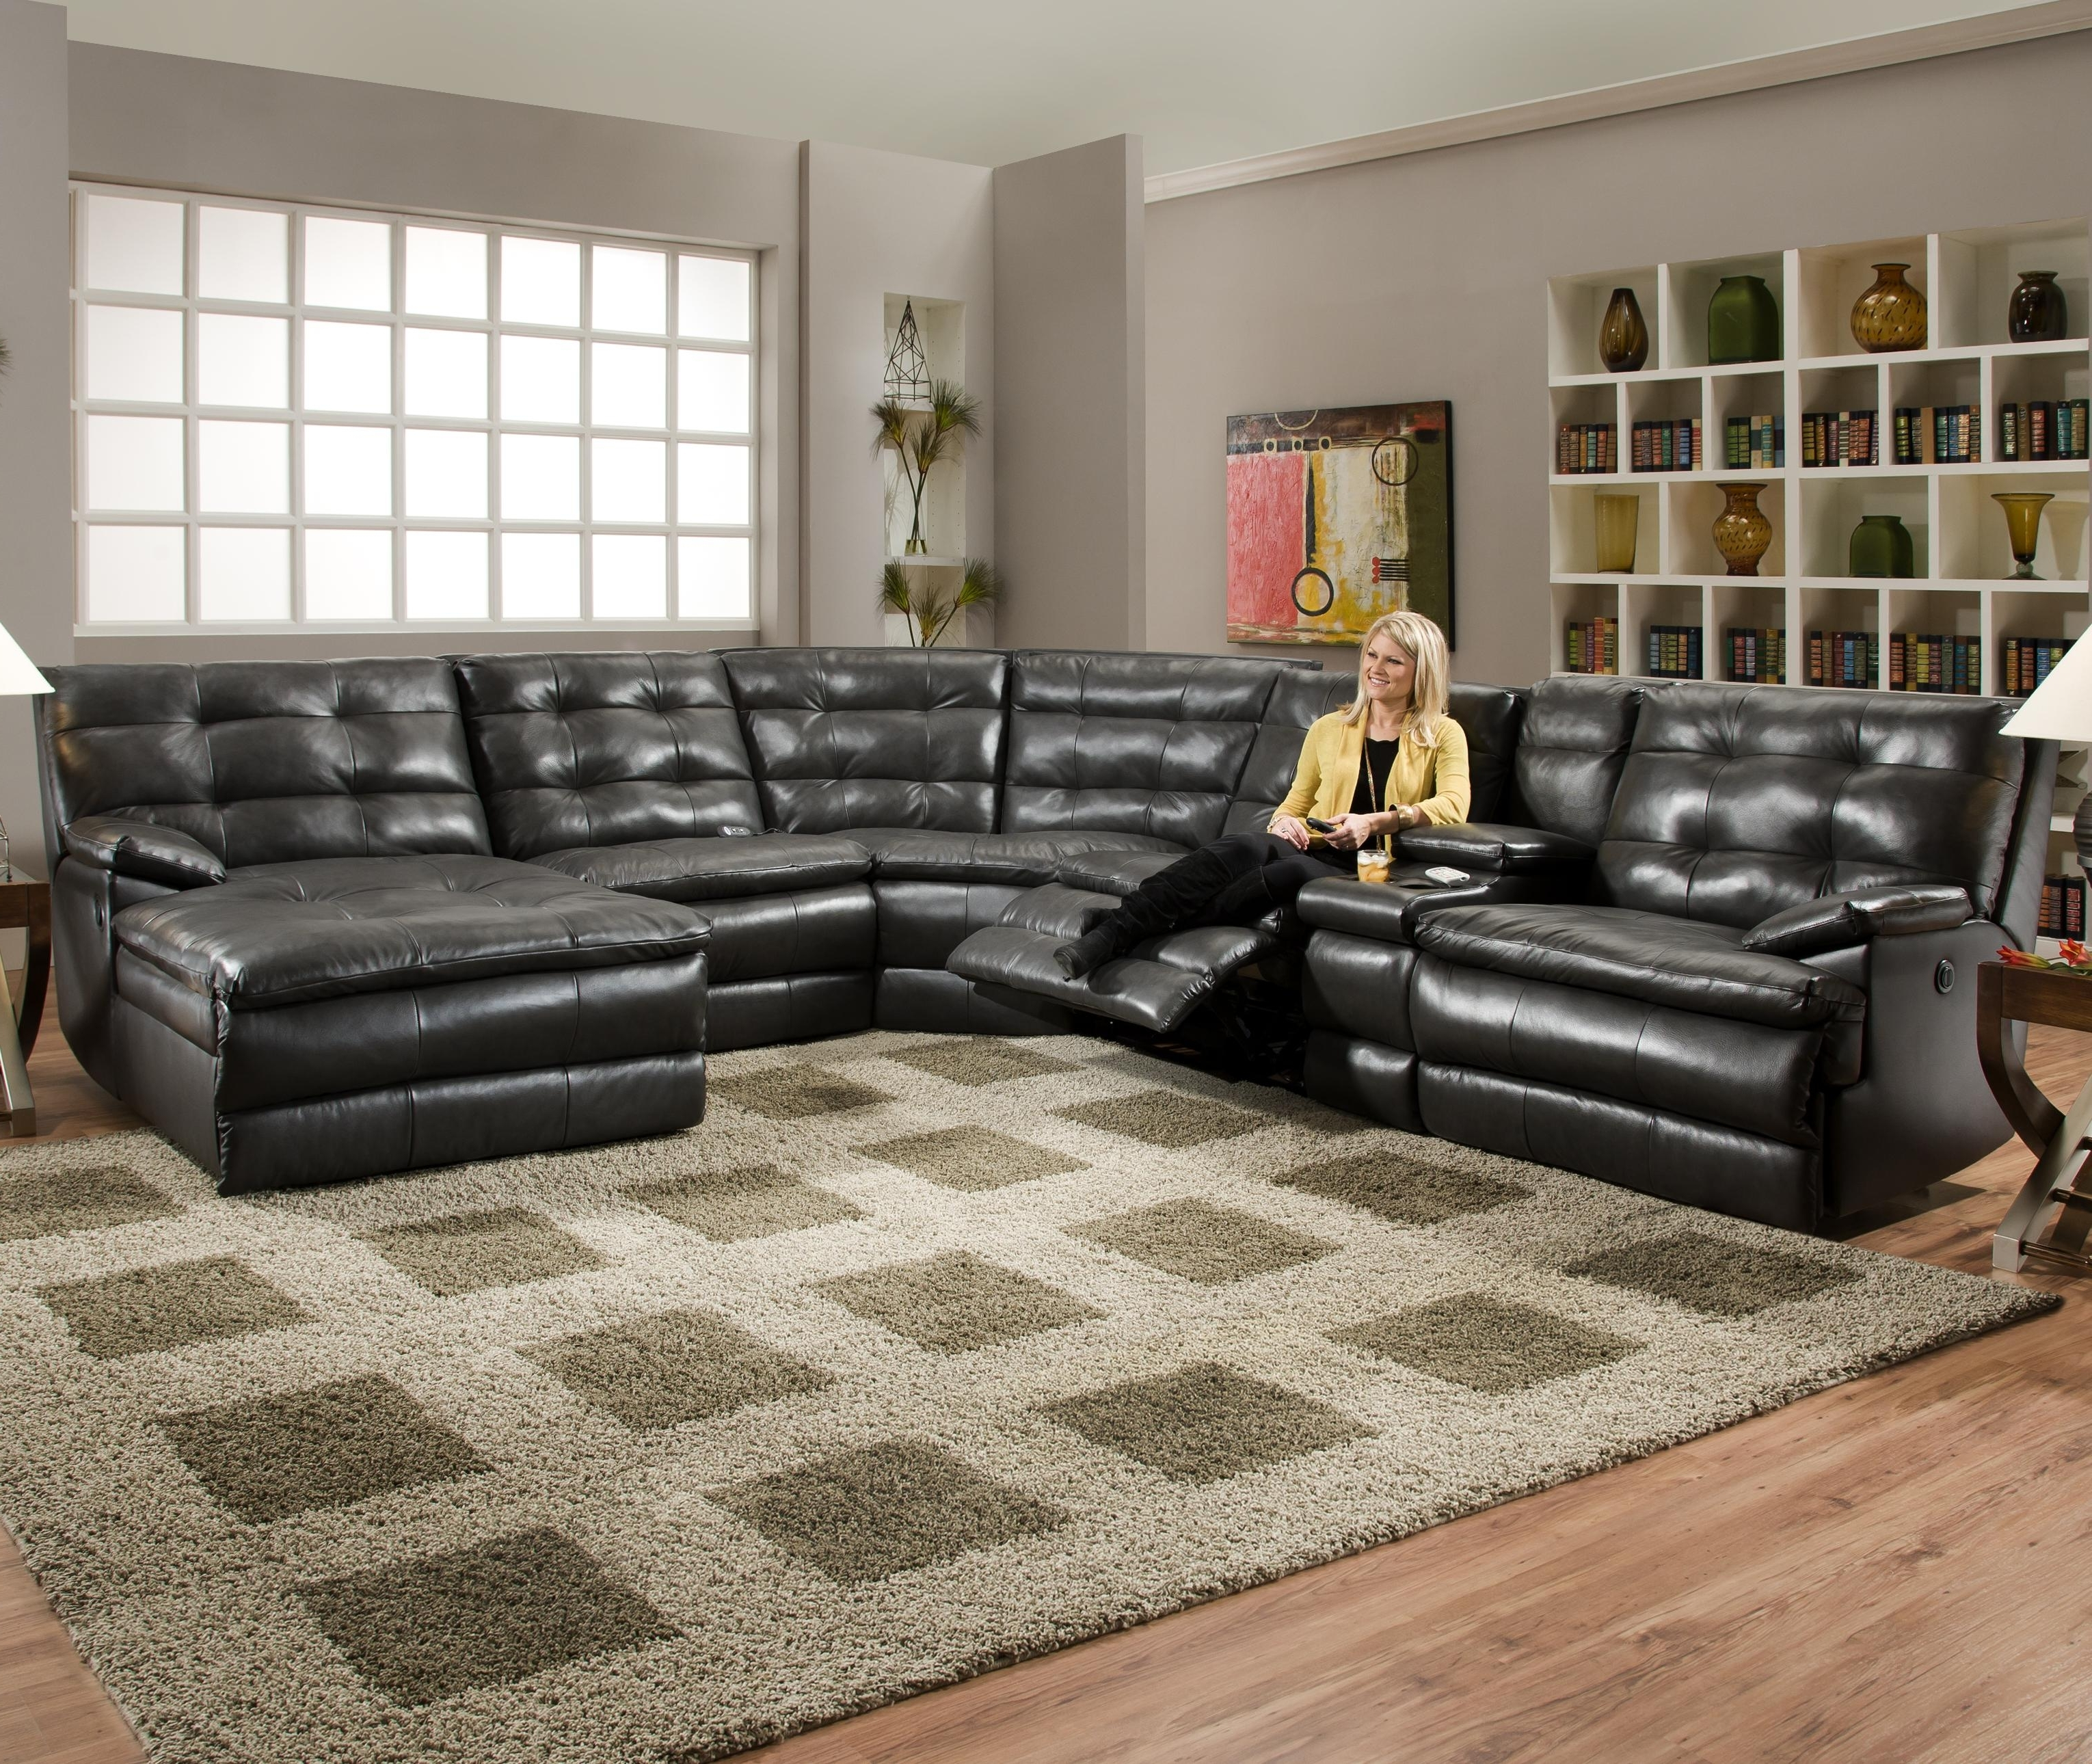 Preferred Fabric Power Reclining Sectional Costco Reclining Sectional Sofas Inside Sectional Sofas At Birmingham Al (View 10 of 20)